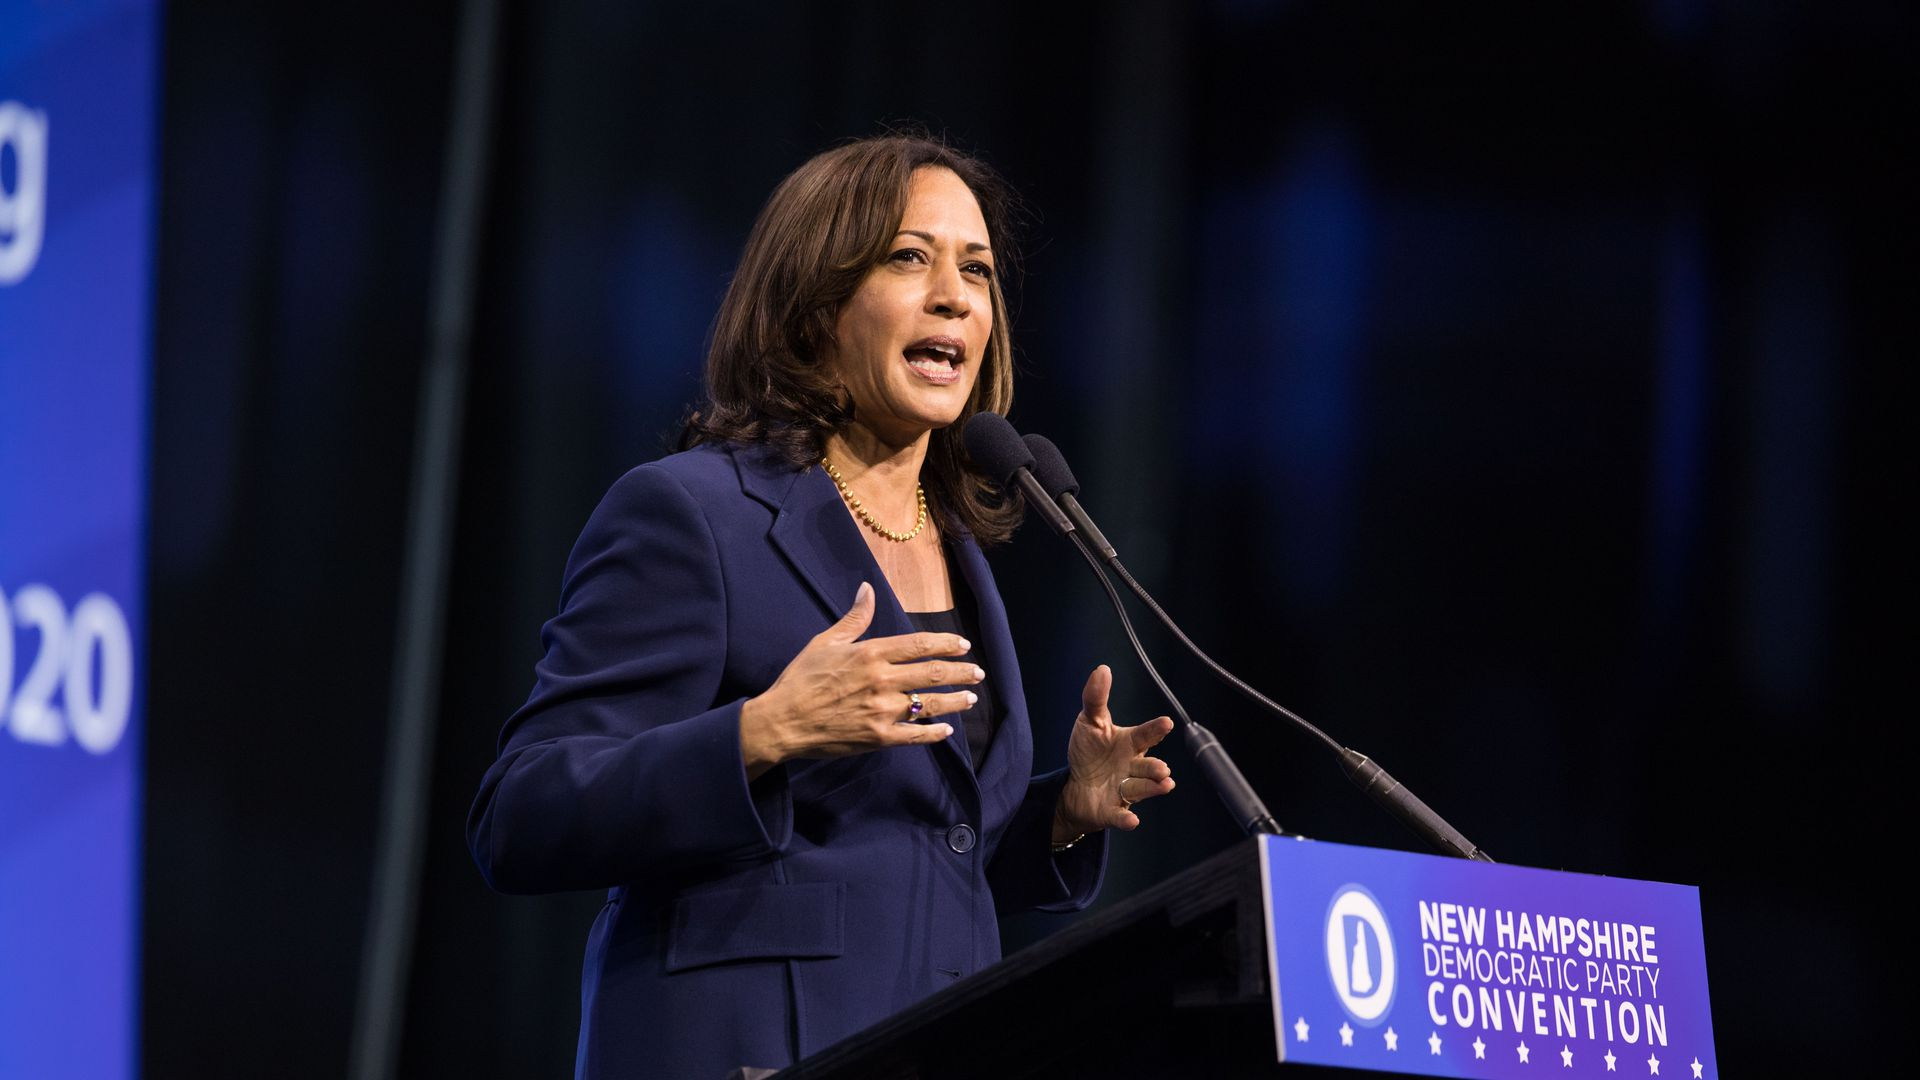 Democratic presidential candidate, Sen. Kamala Harris (D-CA) speaks during the New Hampshire Democratic Party Convention at the SNHU Arena on September 7